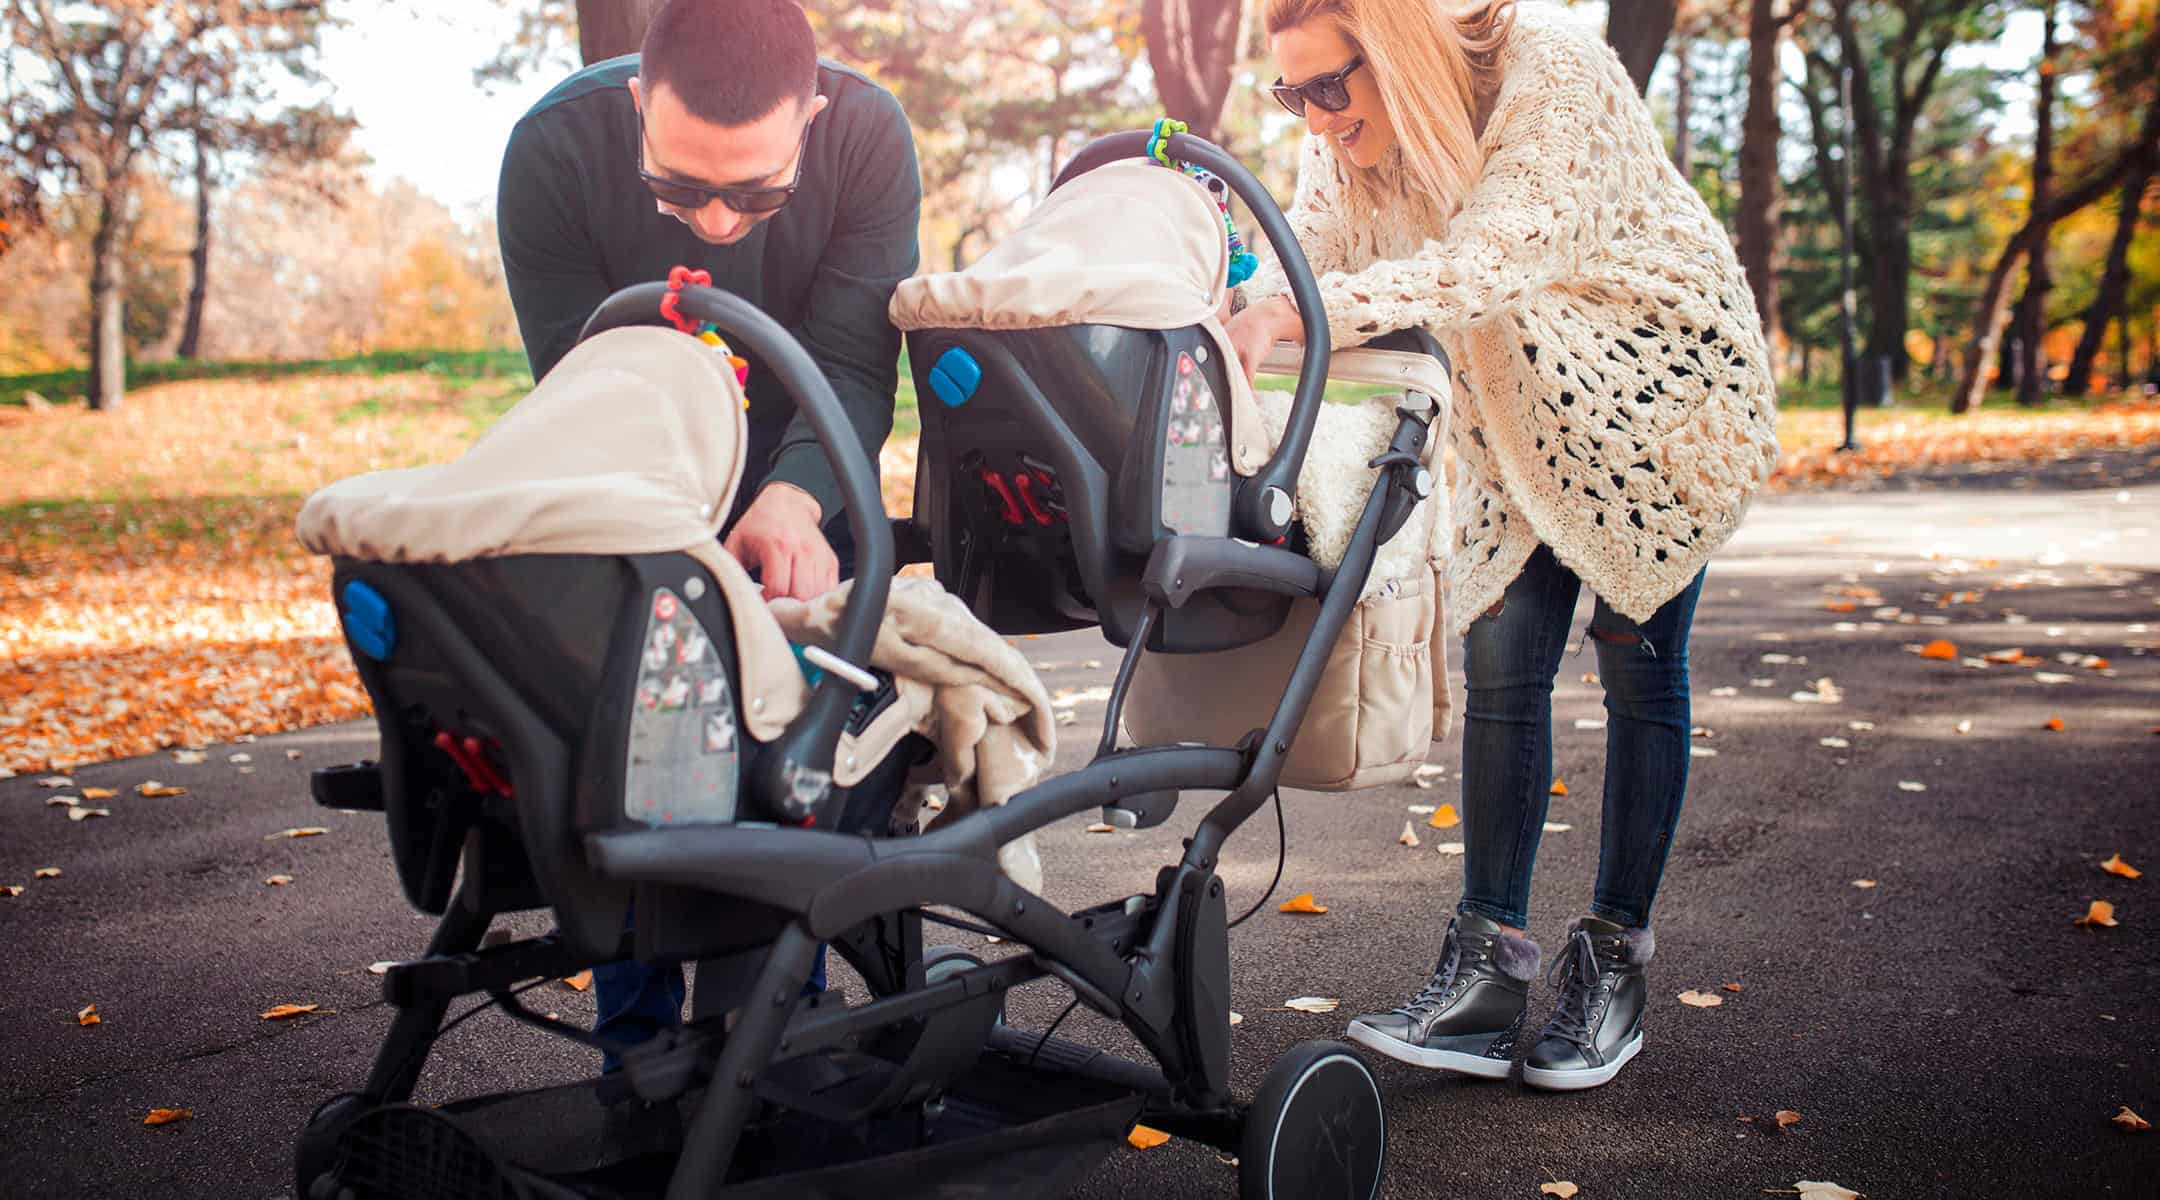 Double Stroller Reviews: How to Buy the Right One?